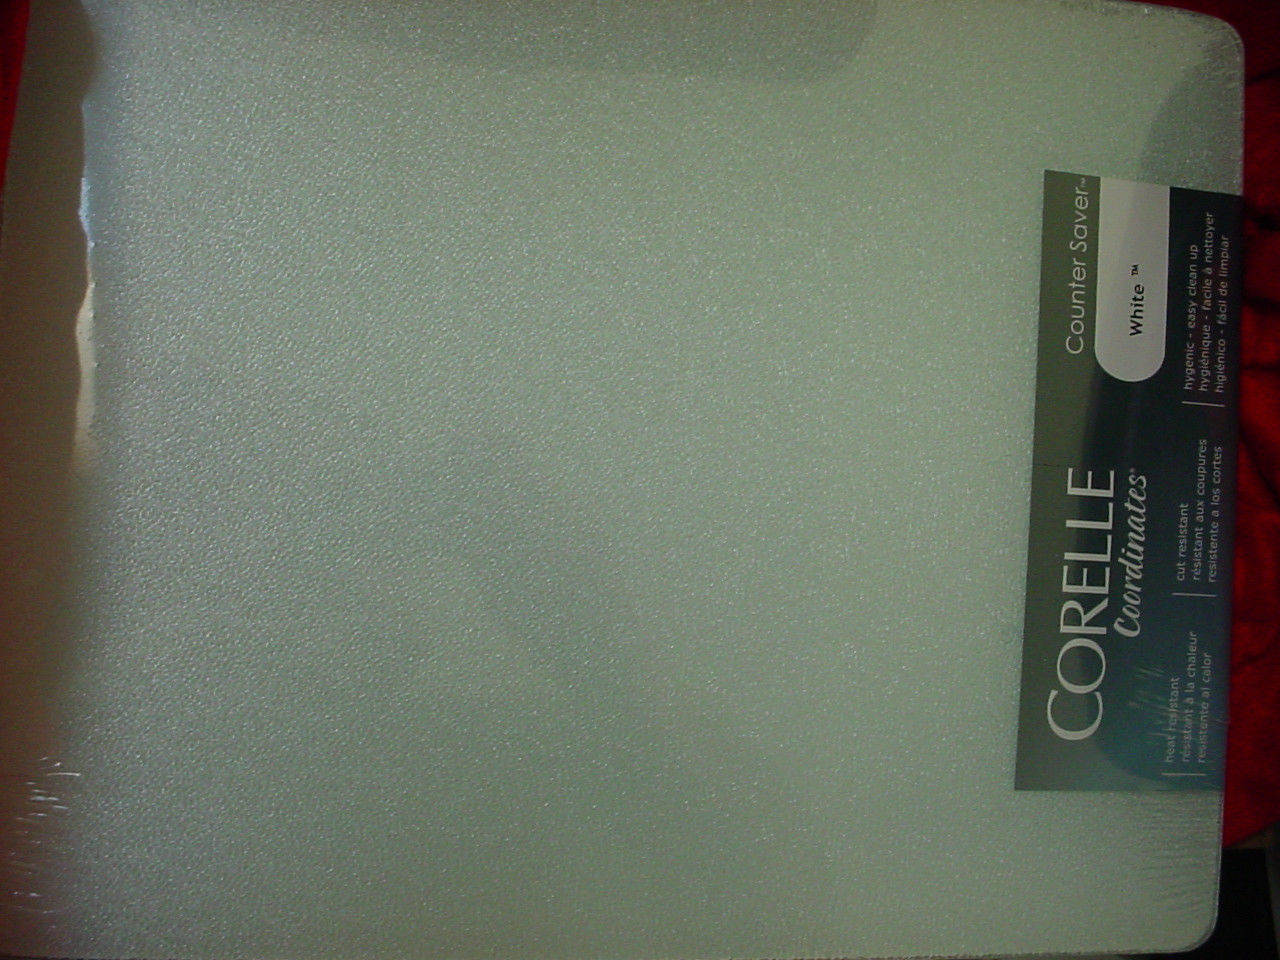 CORELLE WHITE COUNTER SAVER GLASS CUTTING BOARD 12 X 15 INCH NEW FREE USA SHIP - $28.04